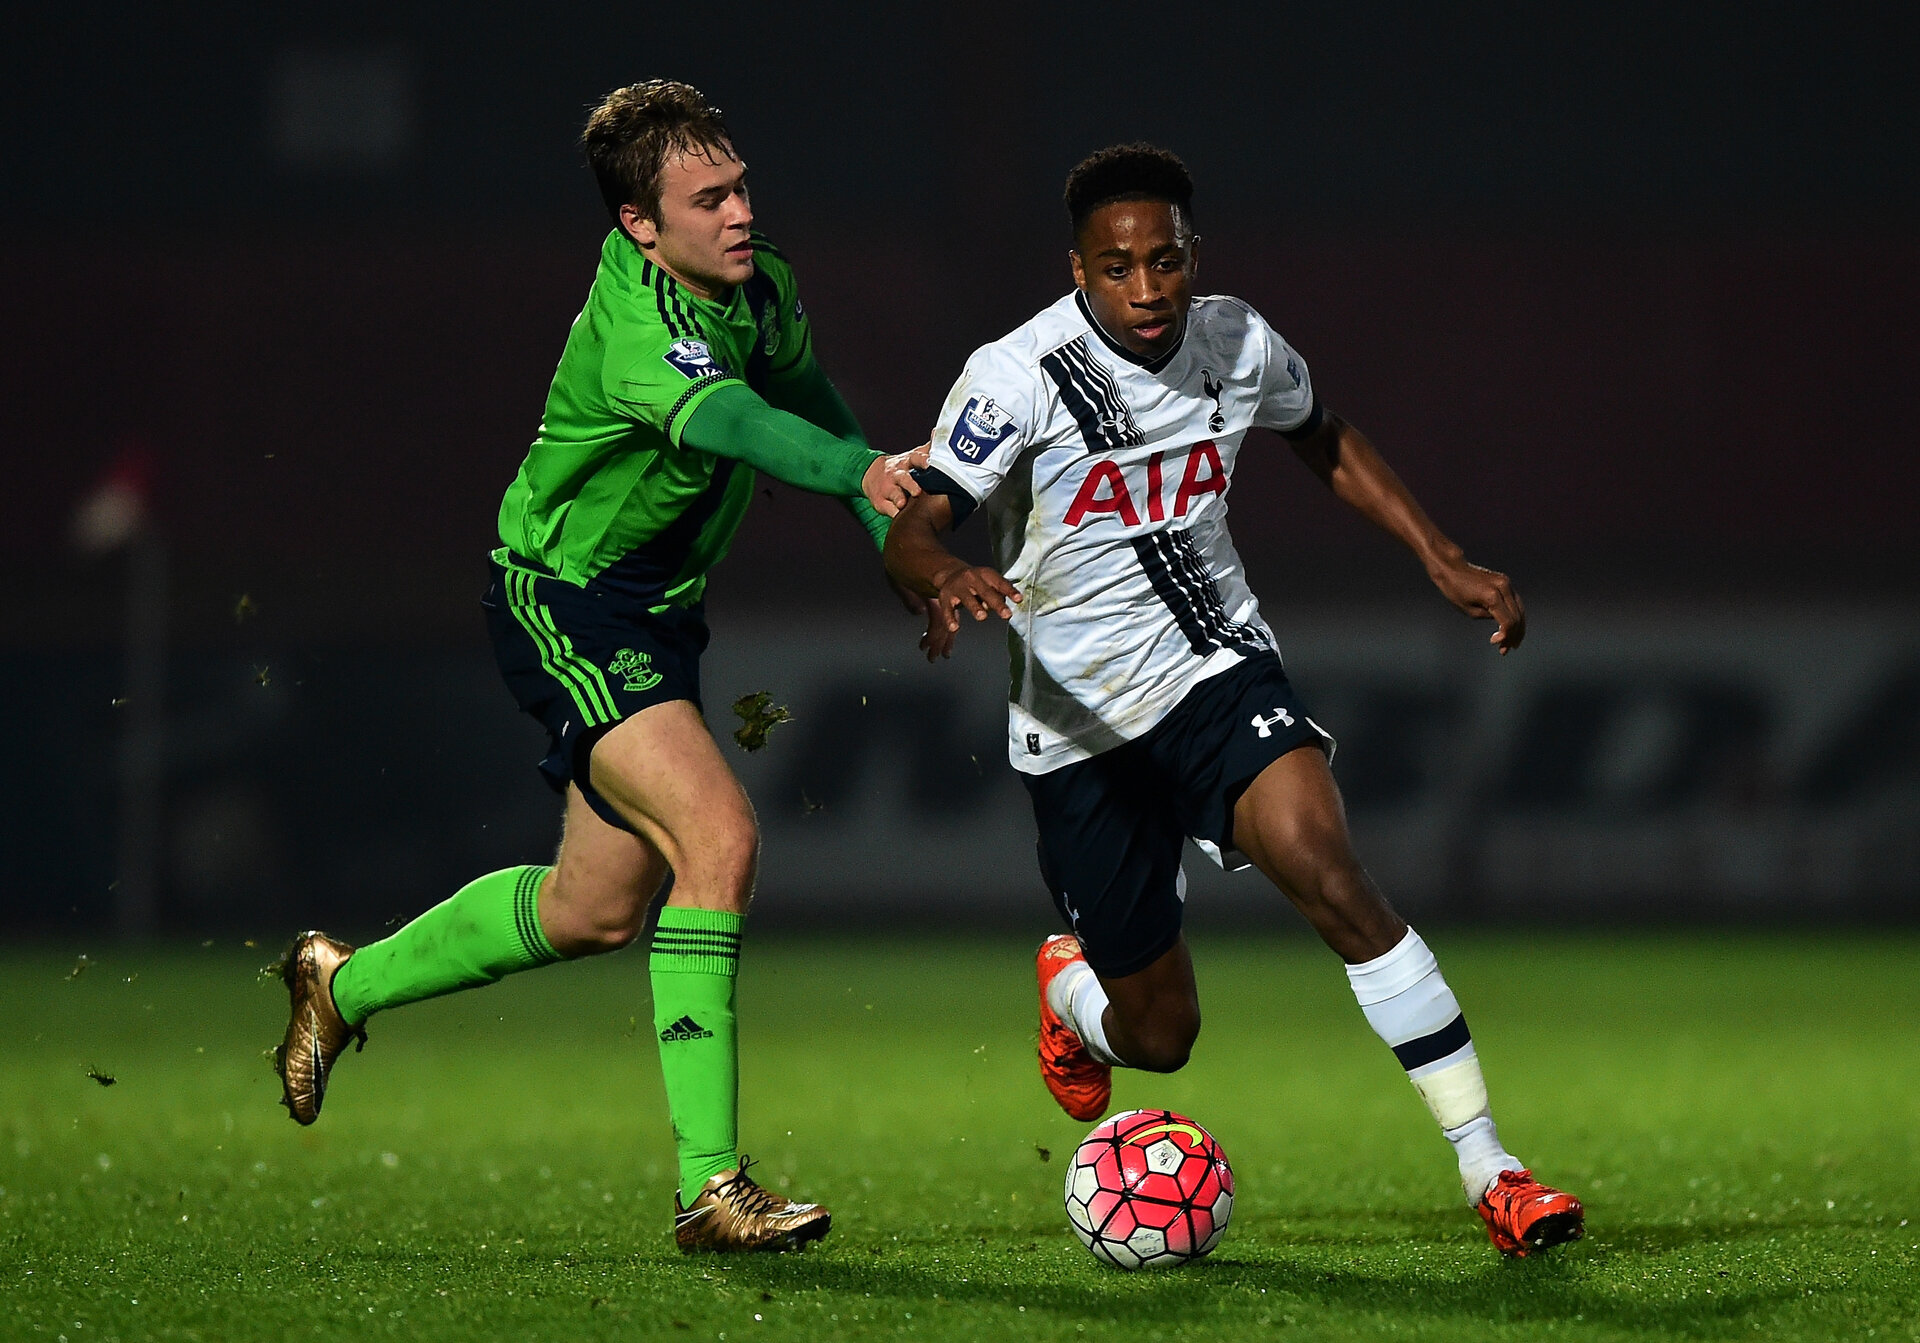 STEVENAGE, ENGLAND - DECEMBER 07:  Kyle Walker-Peters of Tottenham Hotspur (r) holds off Ryan Seager of Southampton during the Barclays U21 Premier League match between Tottenham Hotspur and Southampton at The Lamex Stadium on December 7, 2015 in Stevenage, England.  (Photo by Dan Mullan/Getty Images)